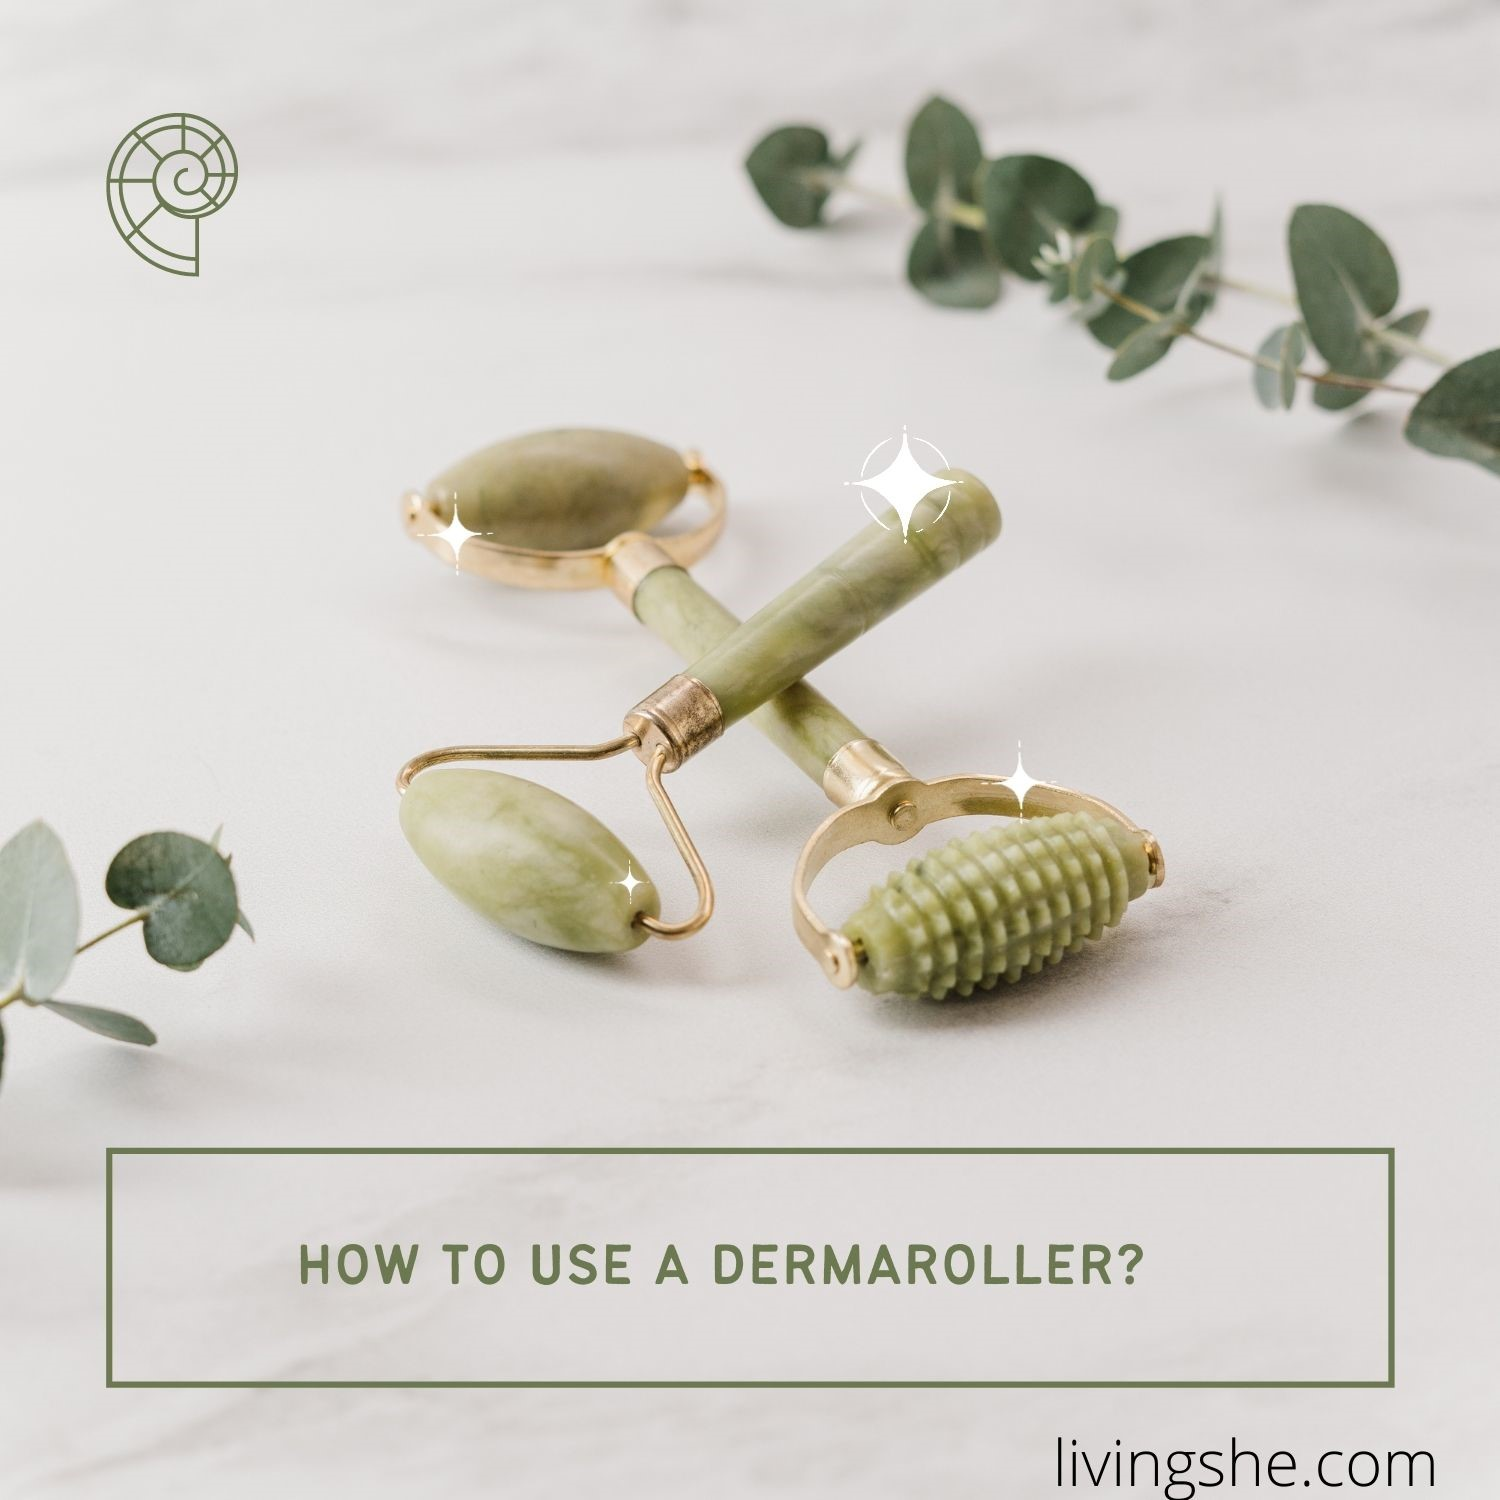 How to use Dermaroller?